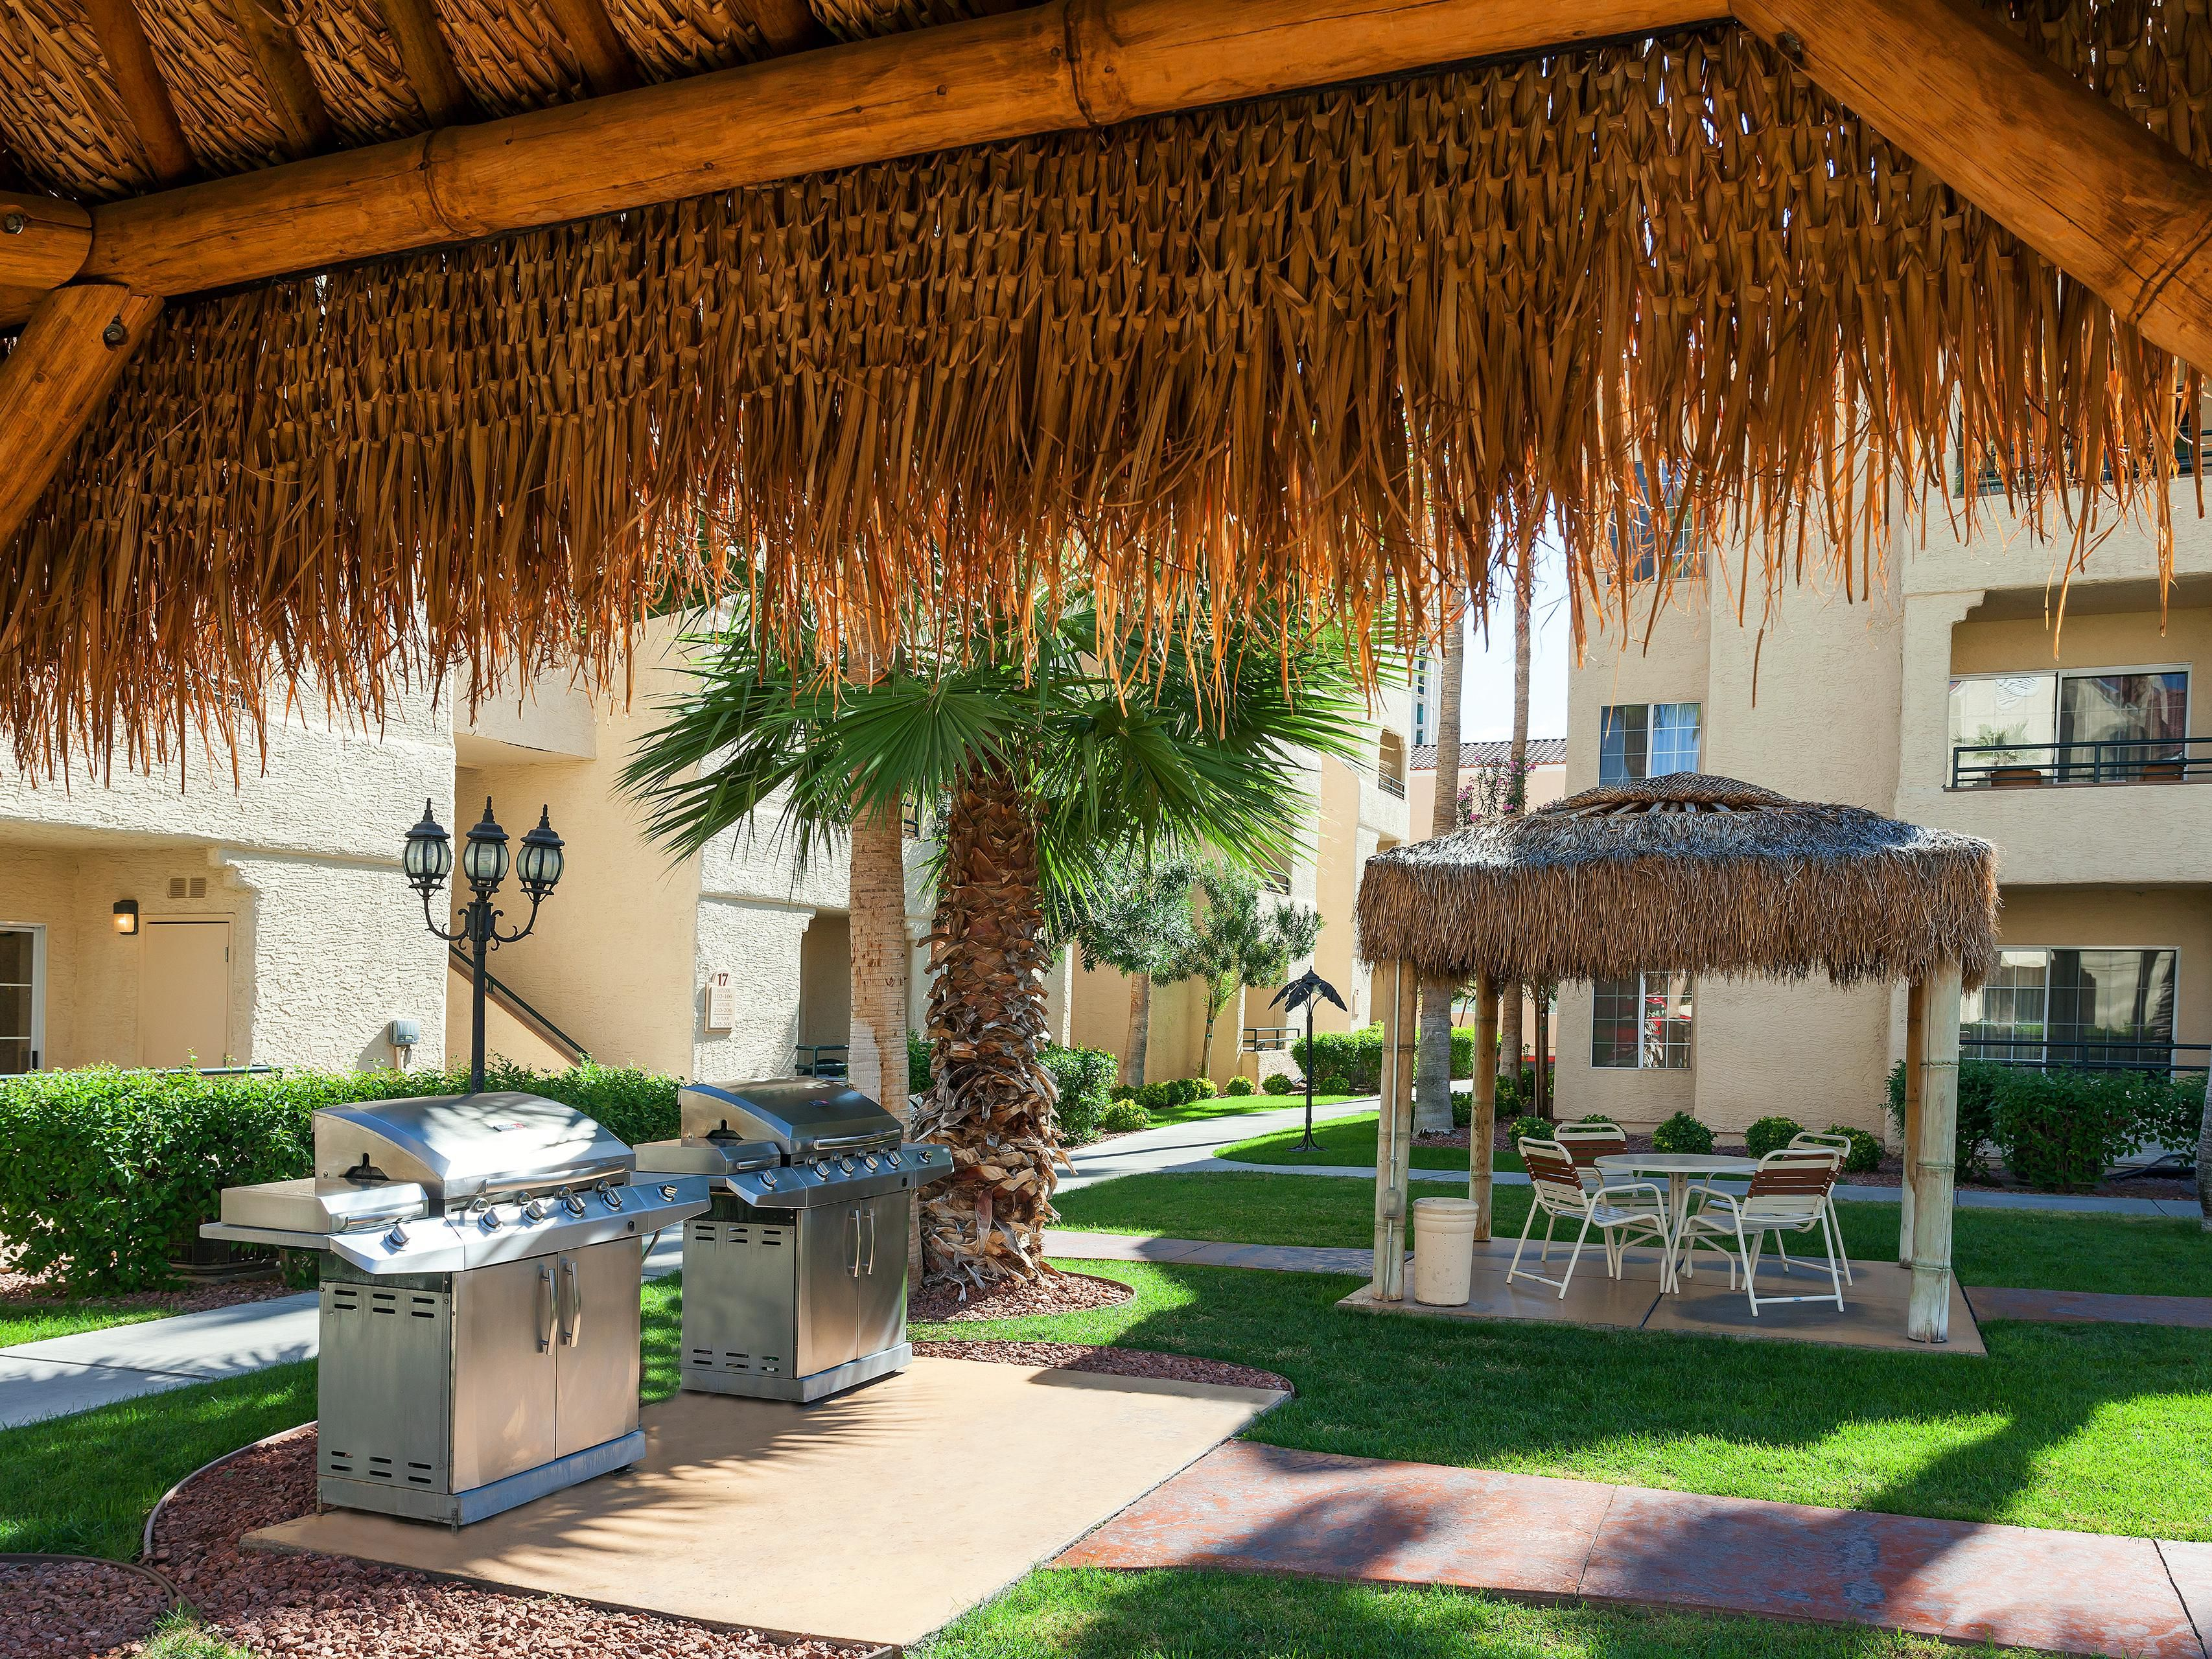 Outdoor grills and gazebos for guests to enjoy